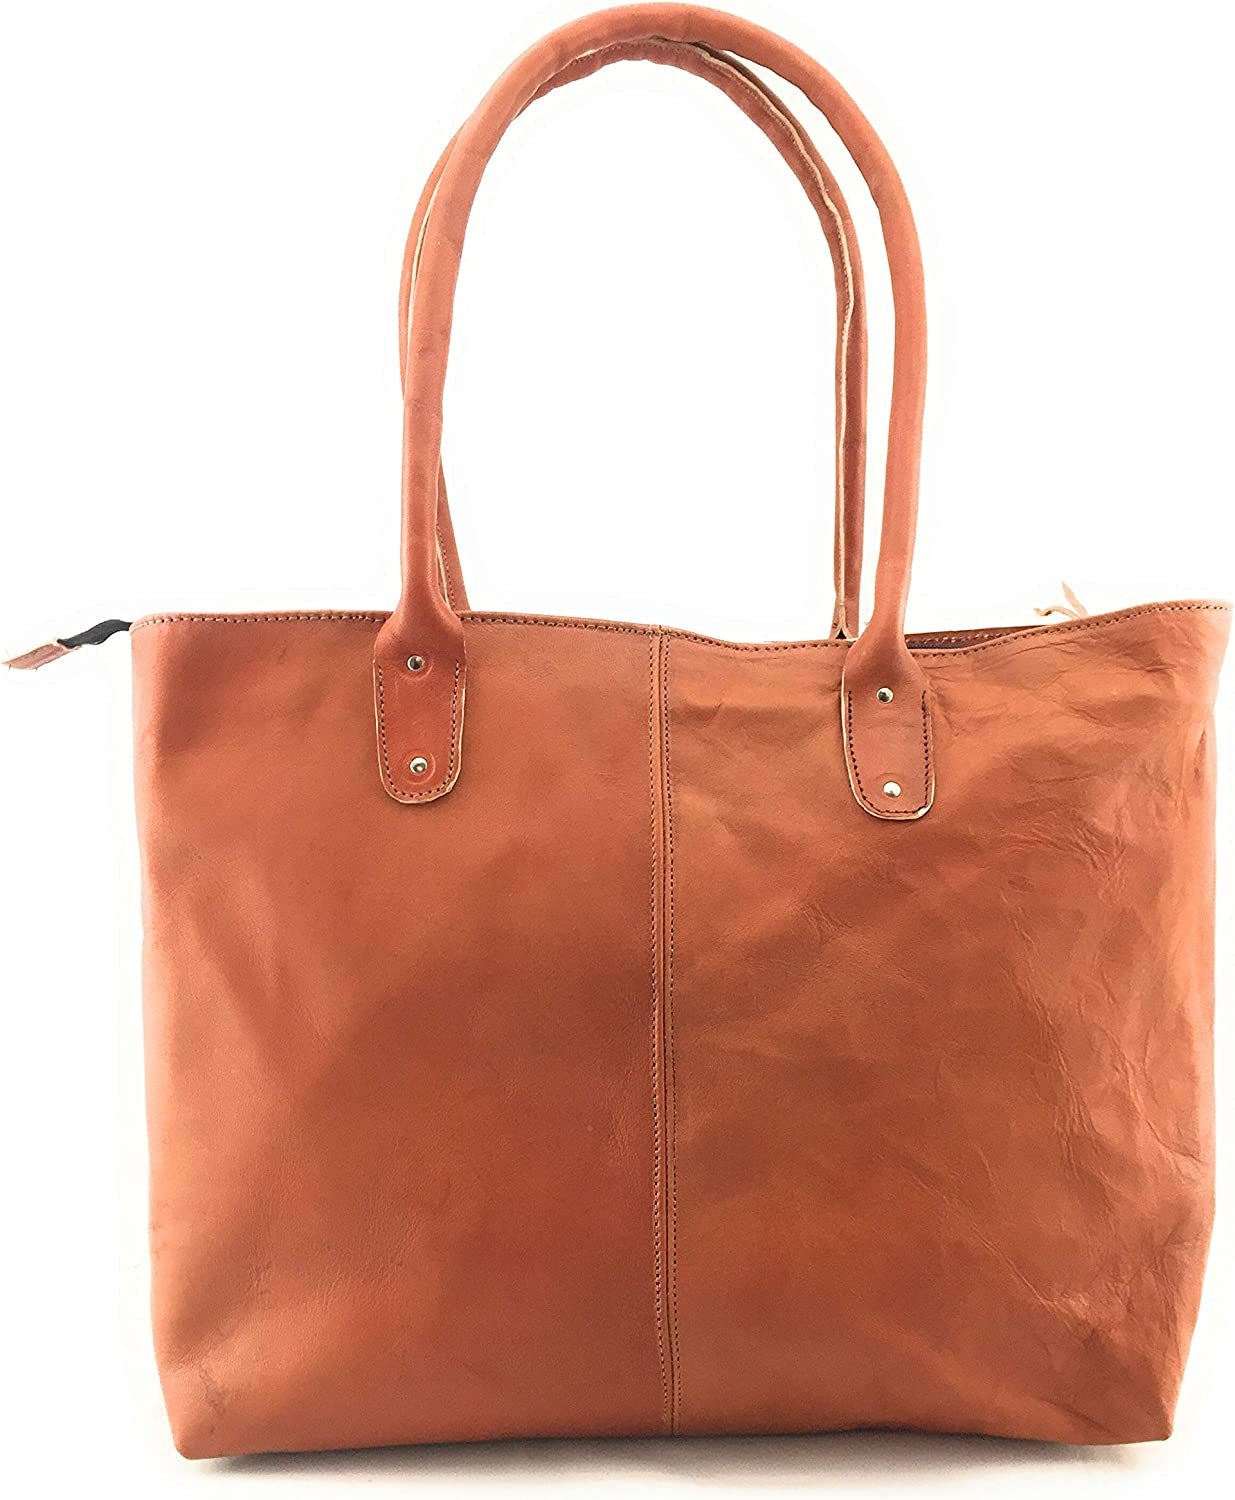 Diaz Womens Leather Tote Bag T01